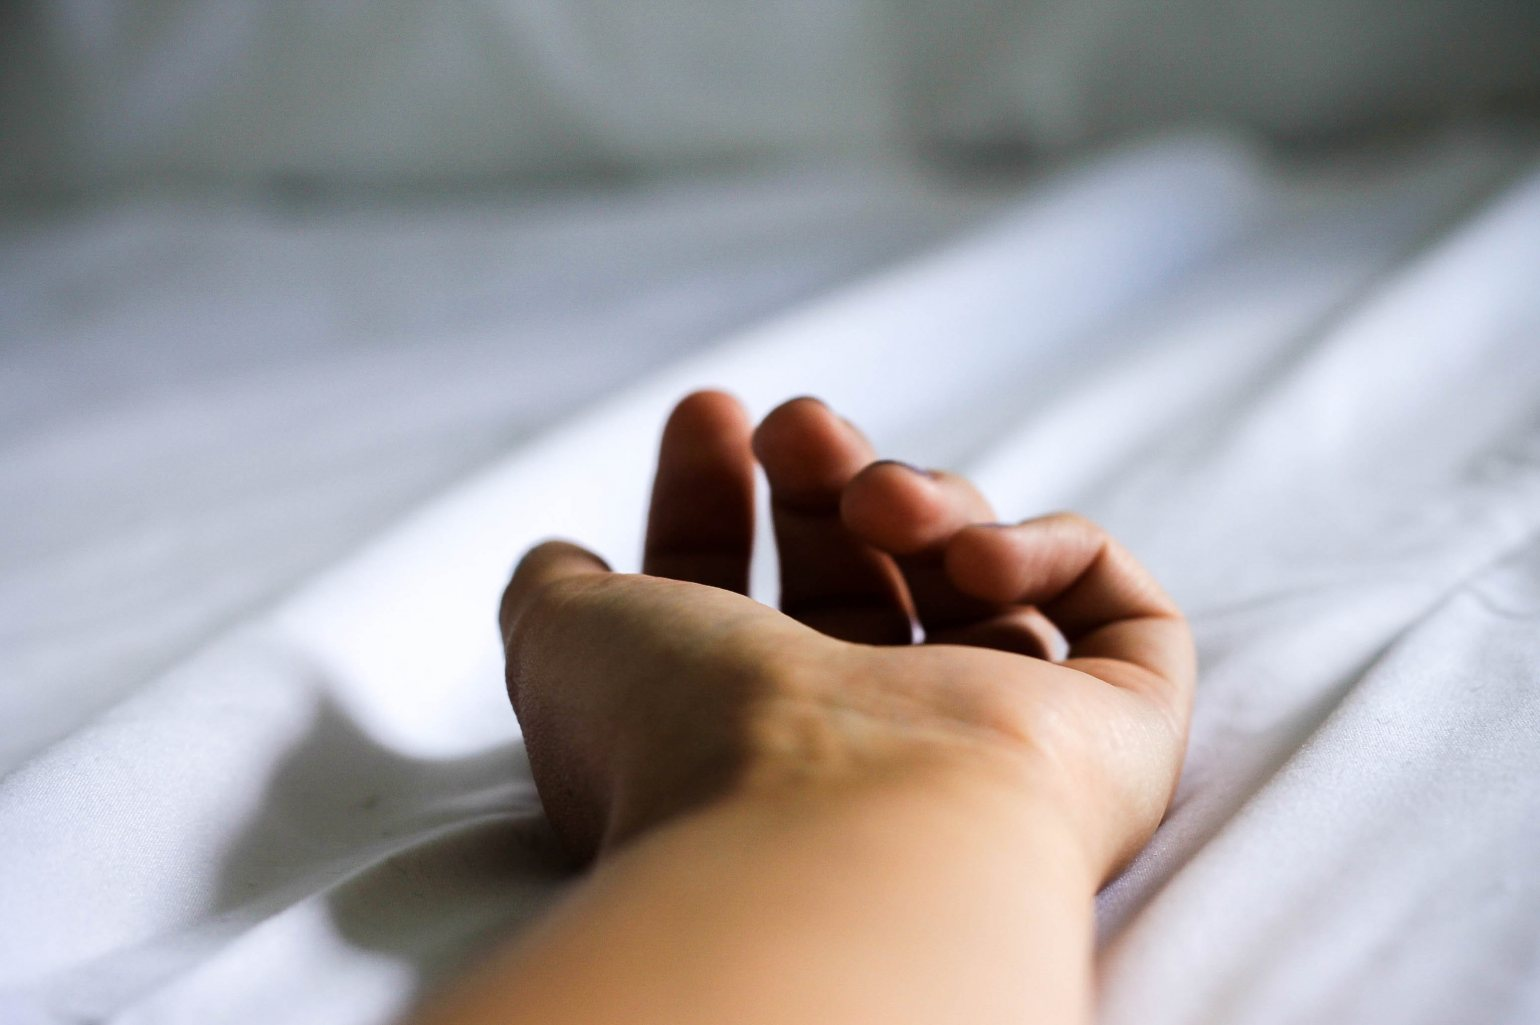 image of hand resting on a bed